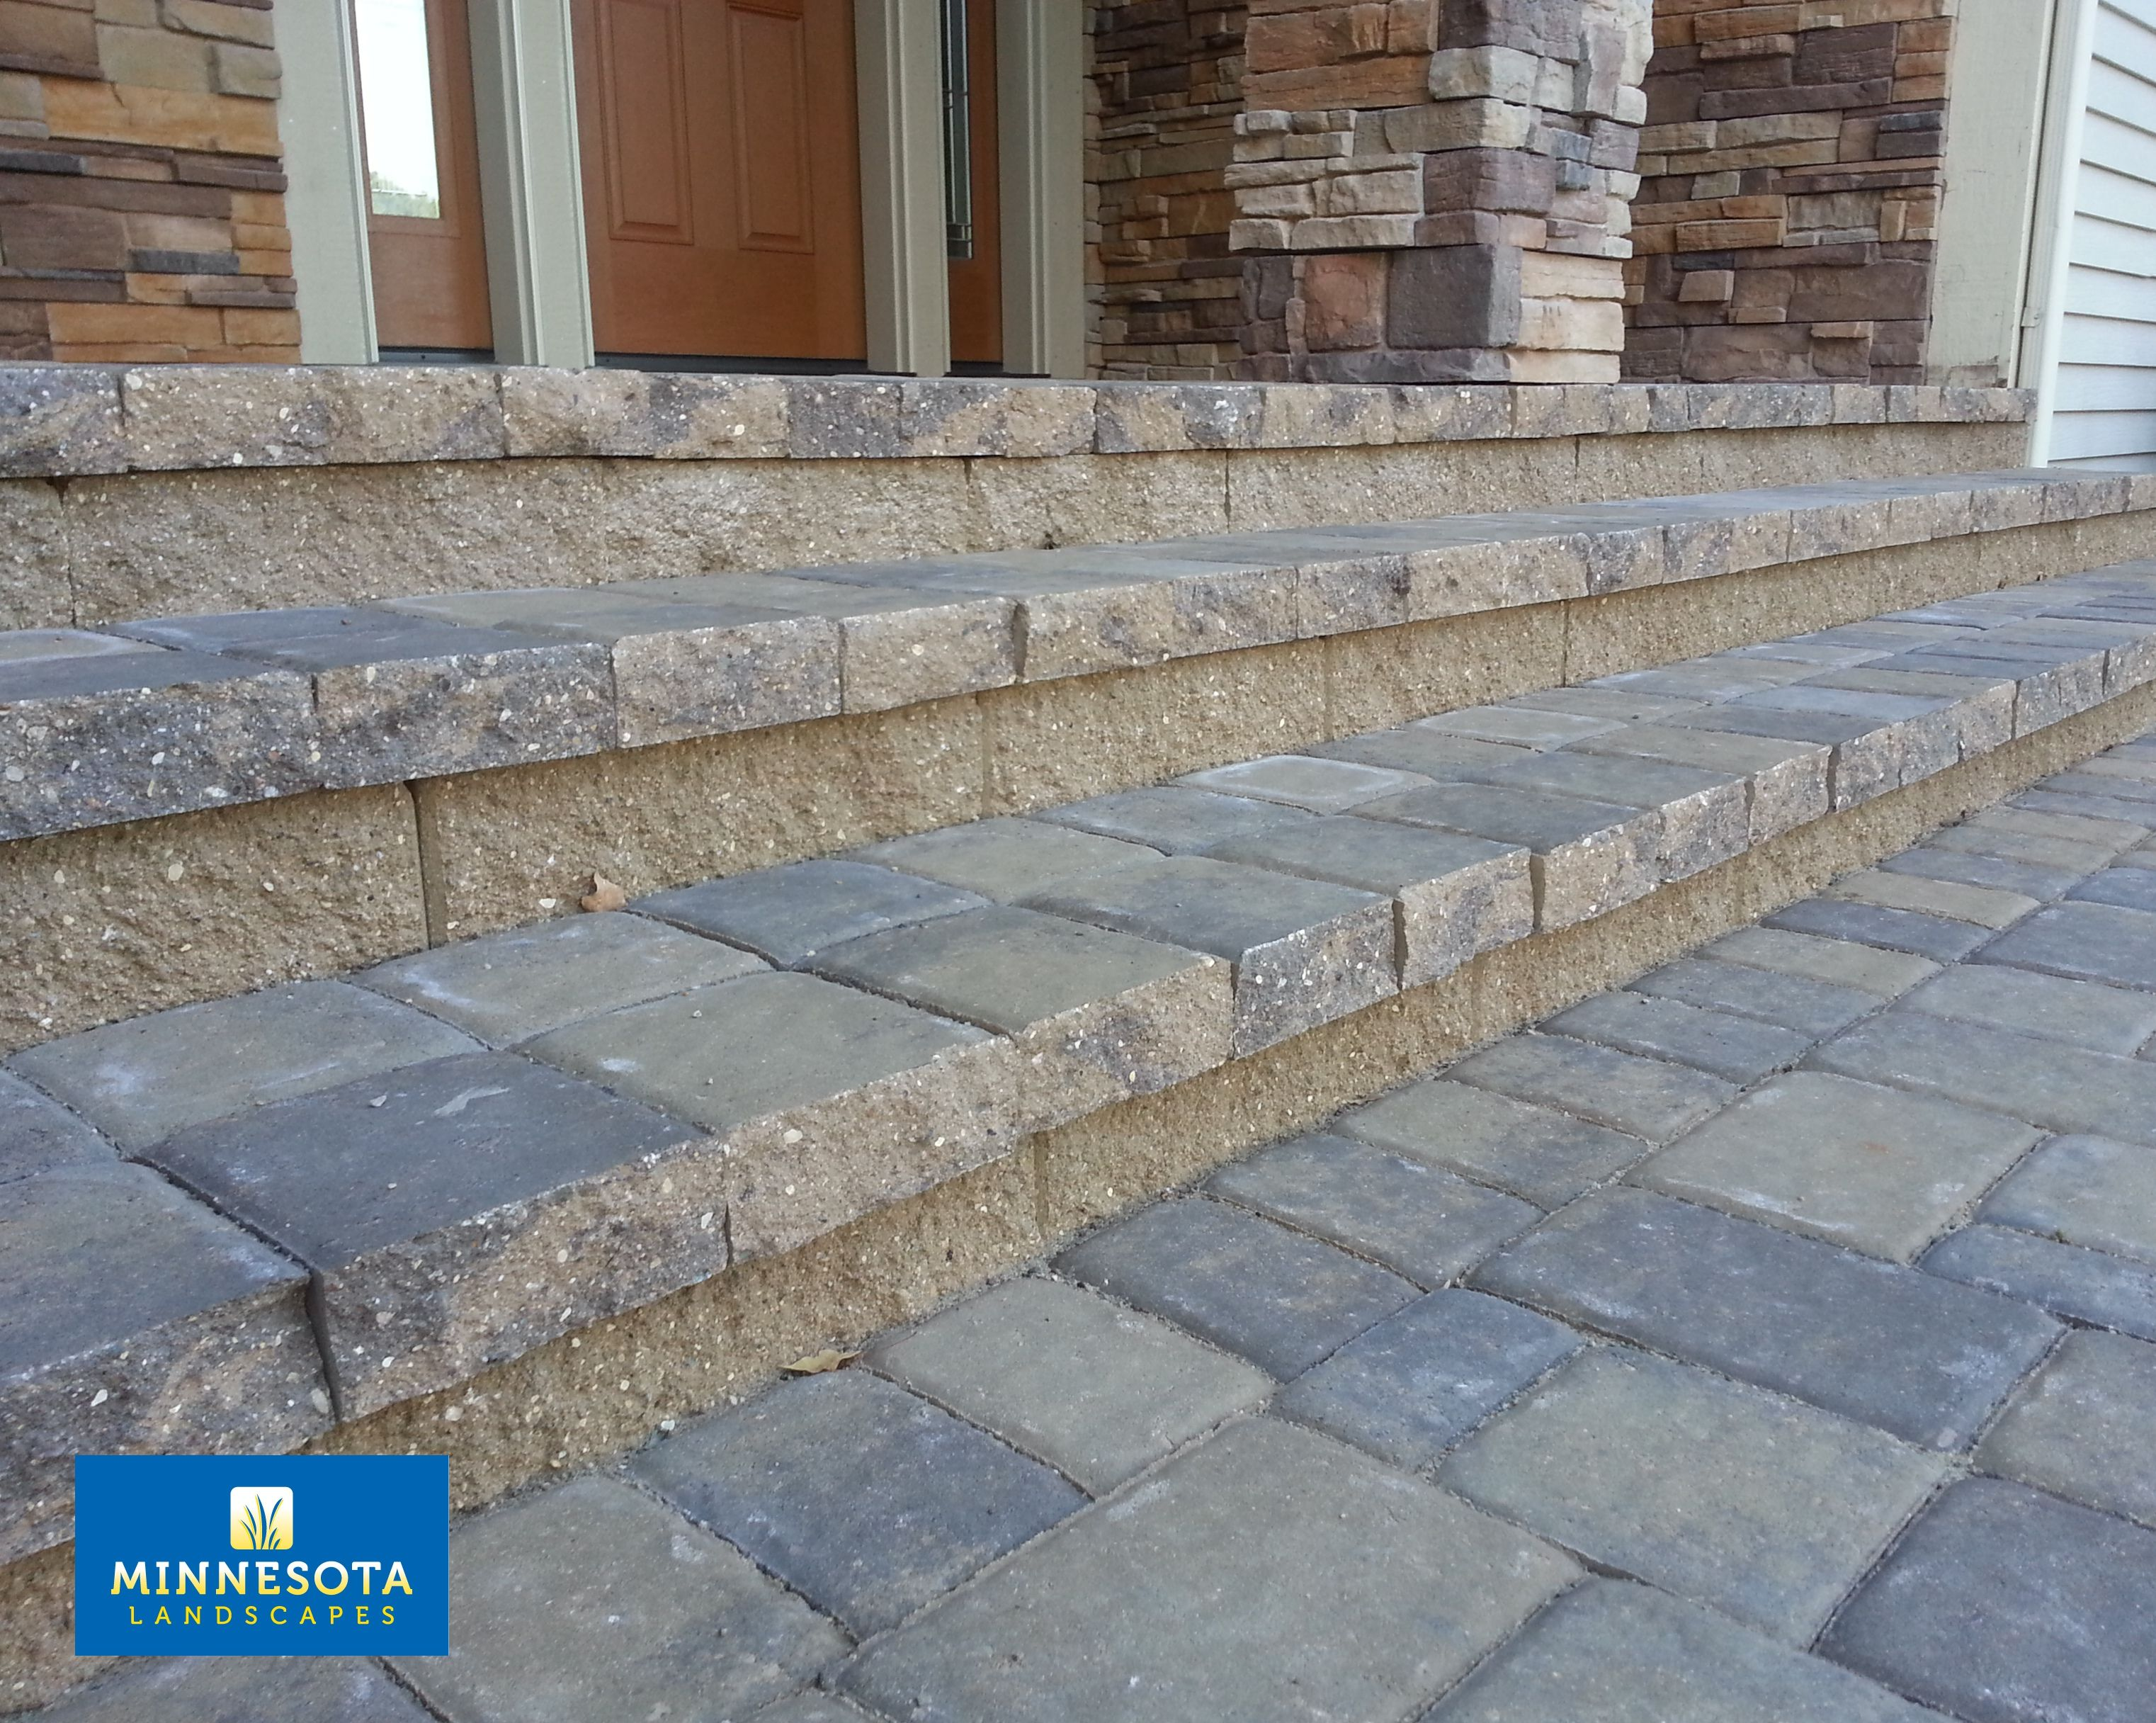 Adhering concrete pavers over the concrete stoop and steps is a